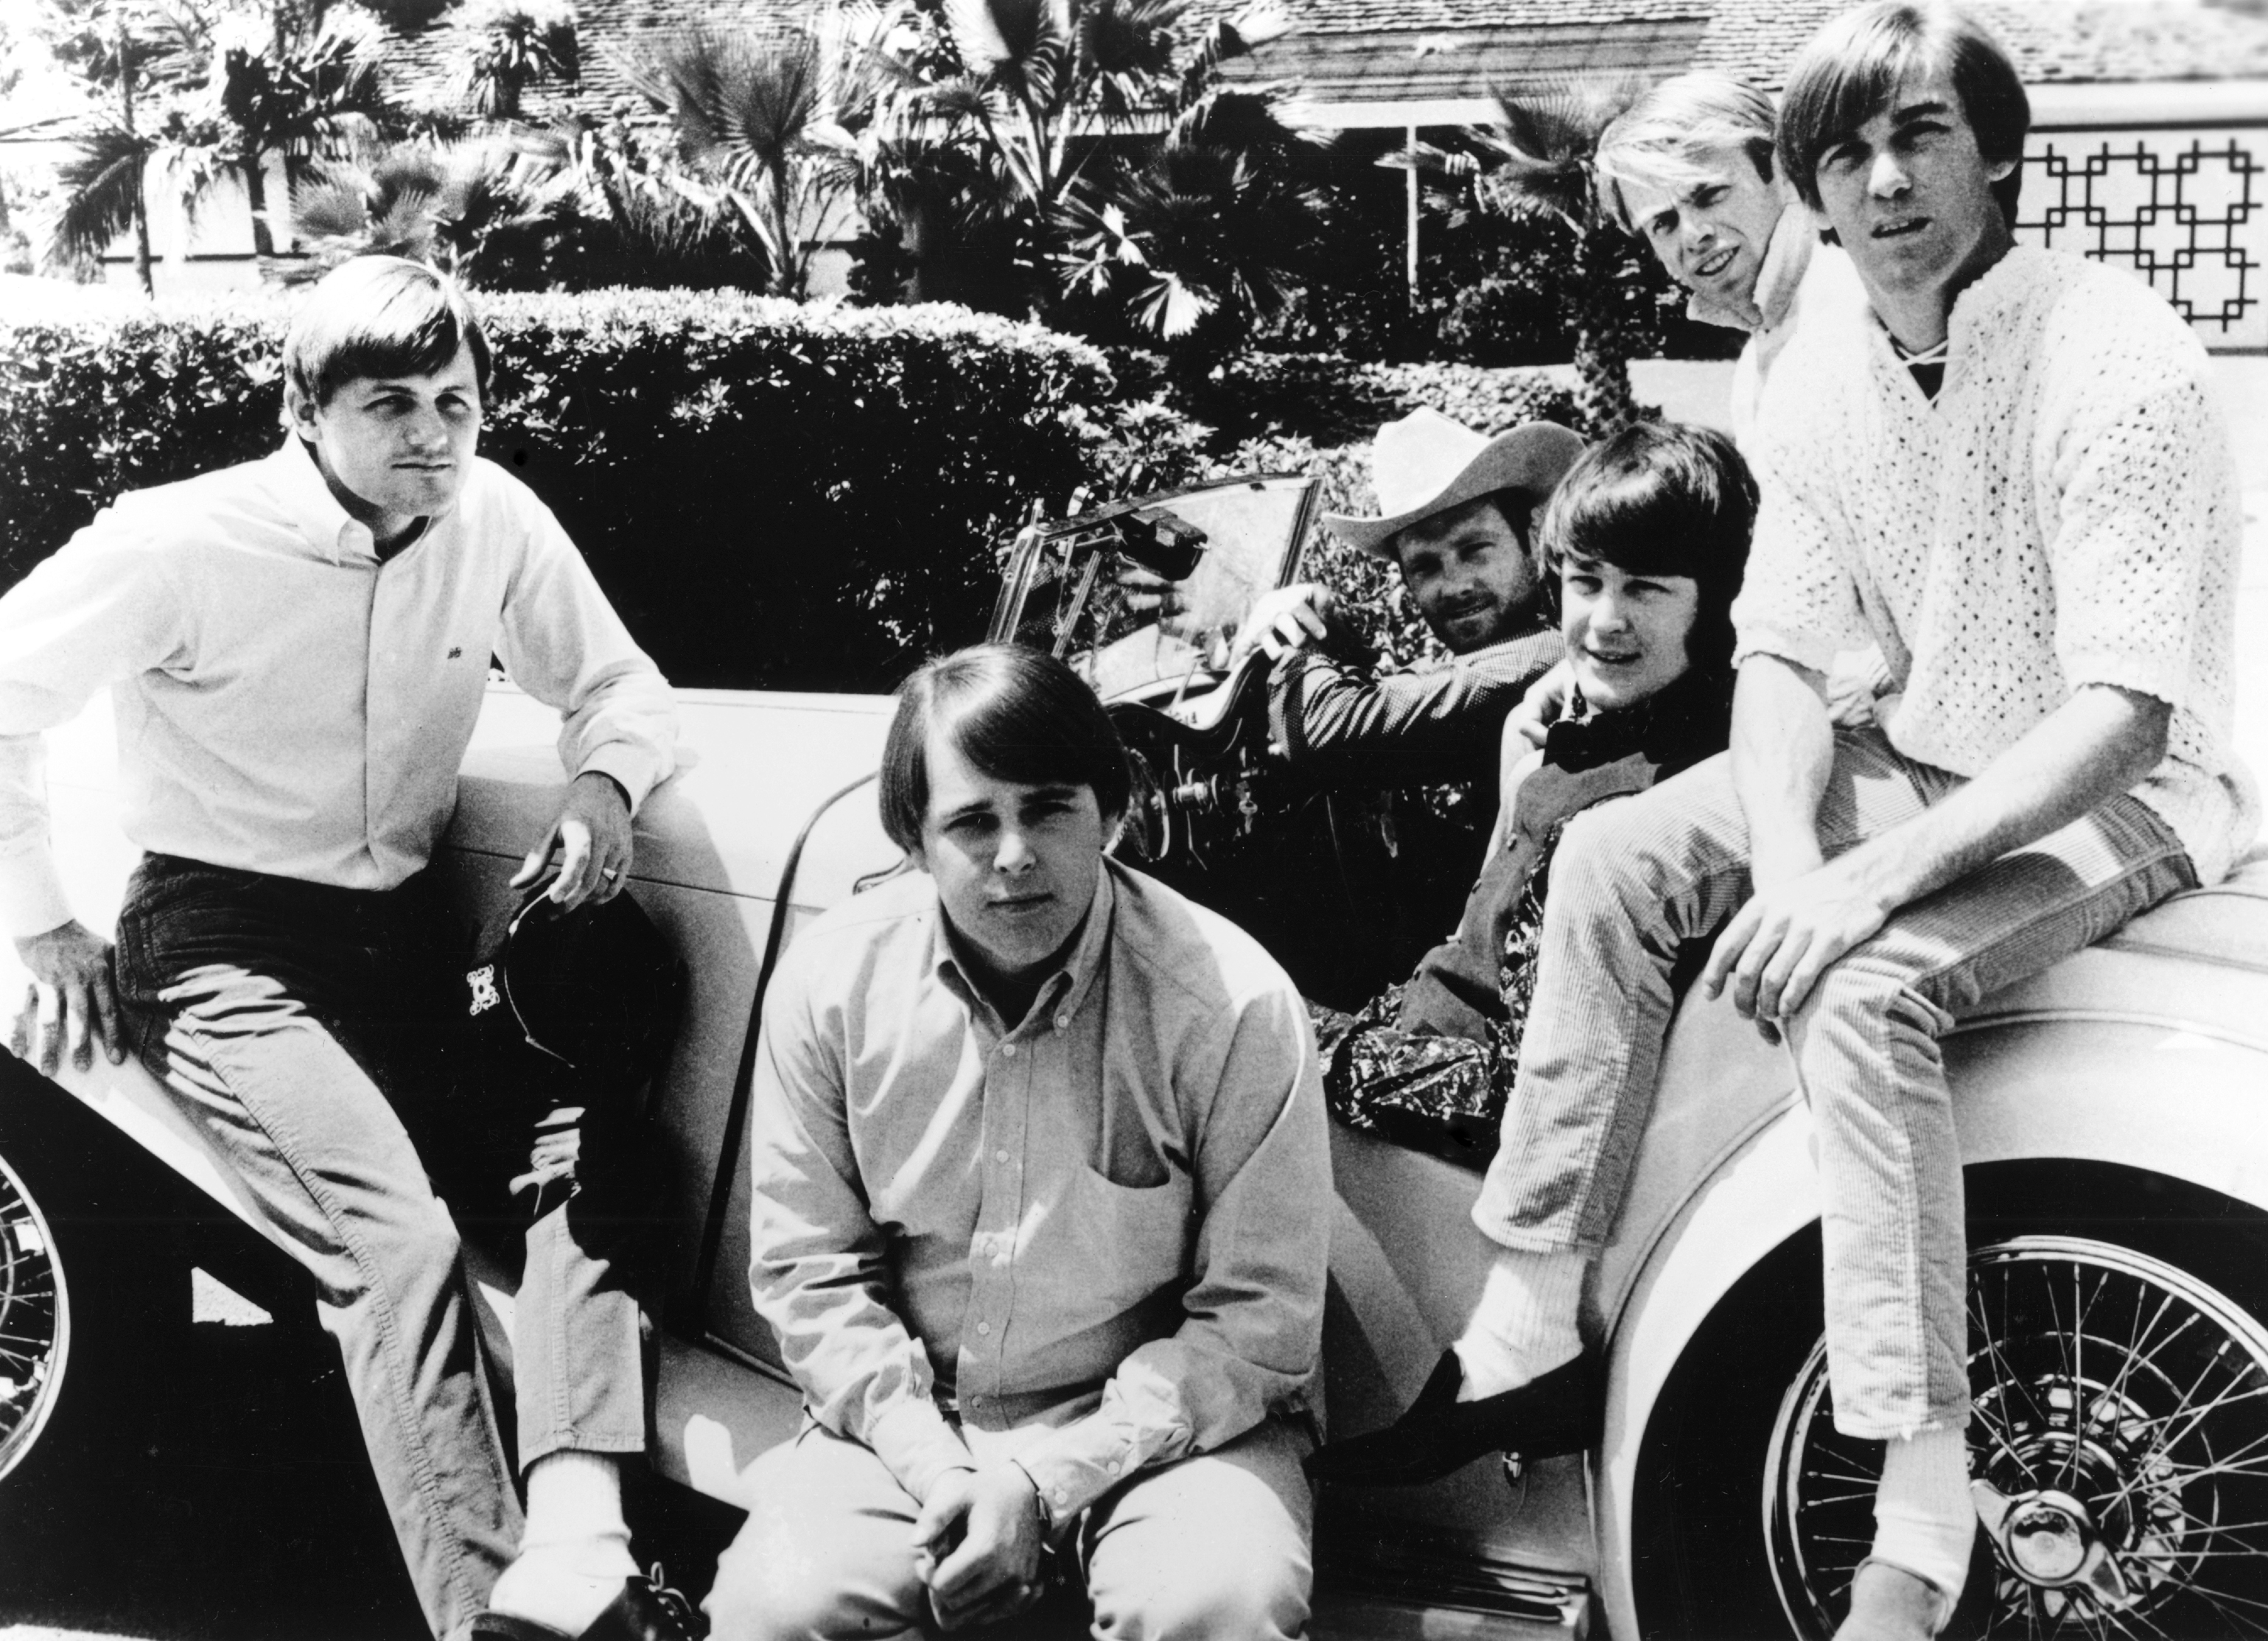 surviving beach boys put bad blood aside for rare interview